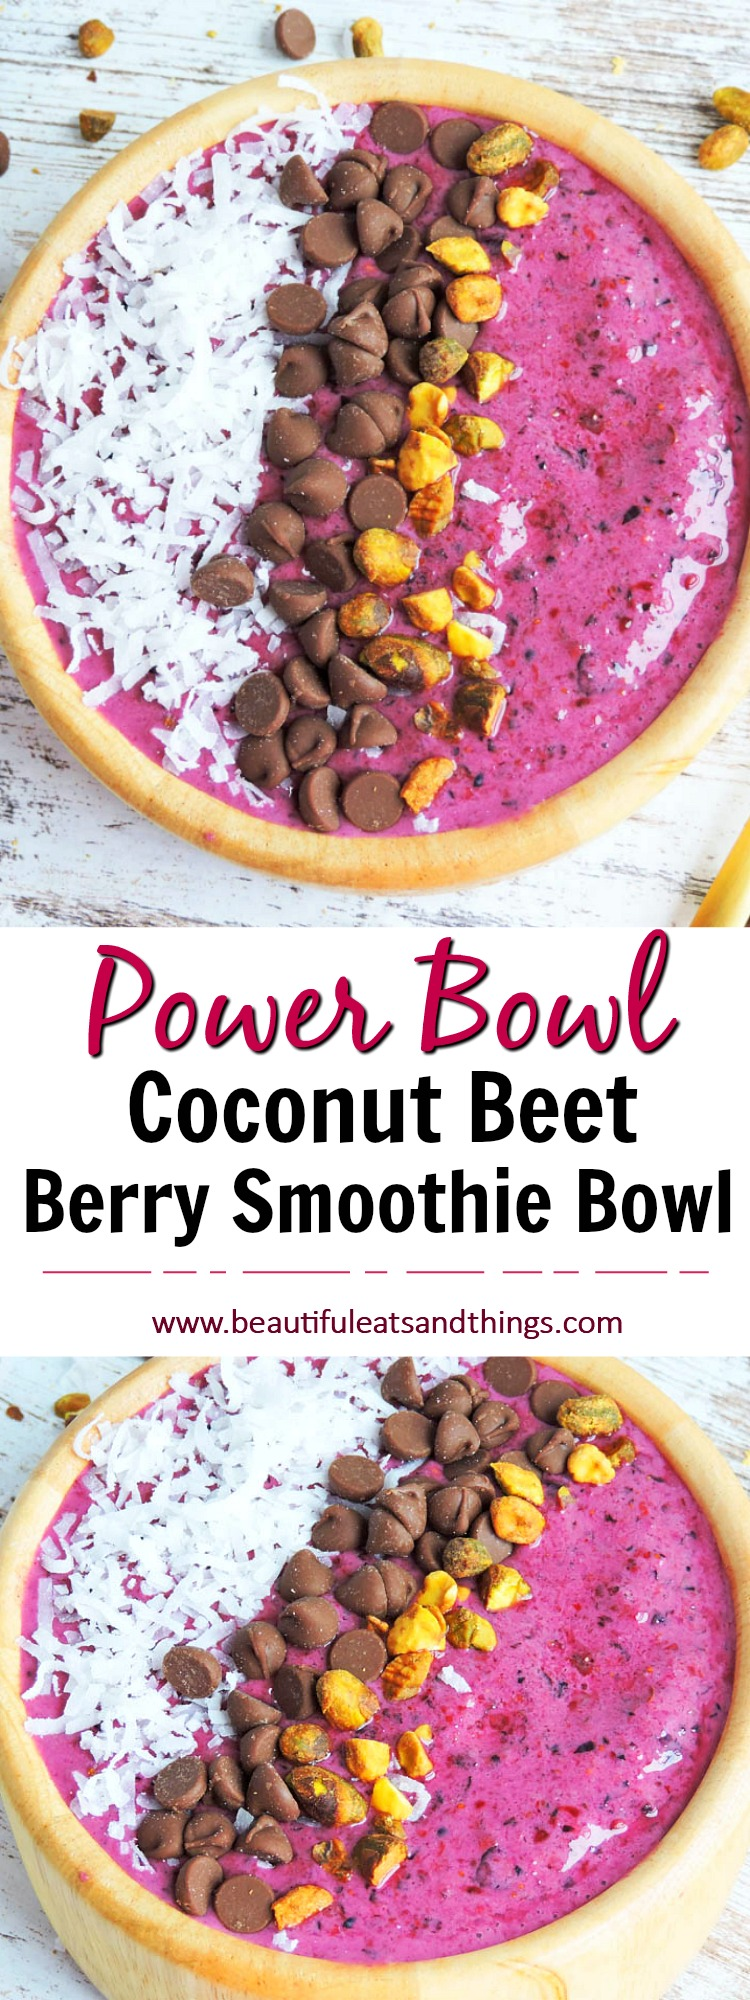 Coconut Beet Berry Smoothie Bowl